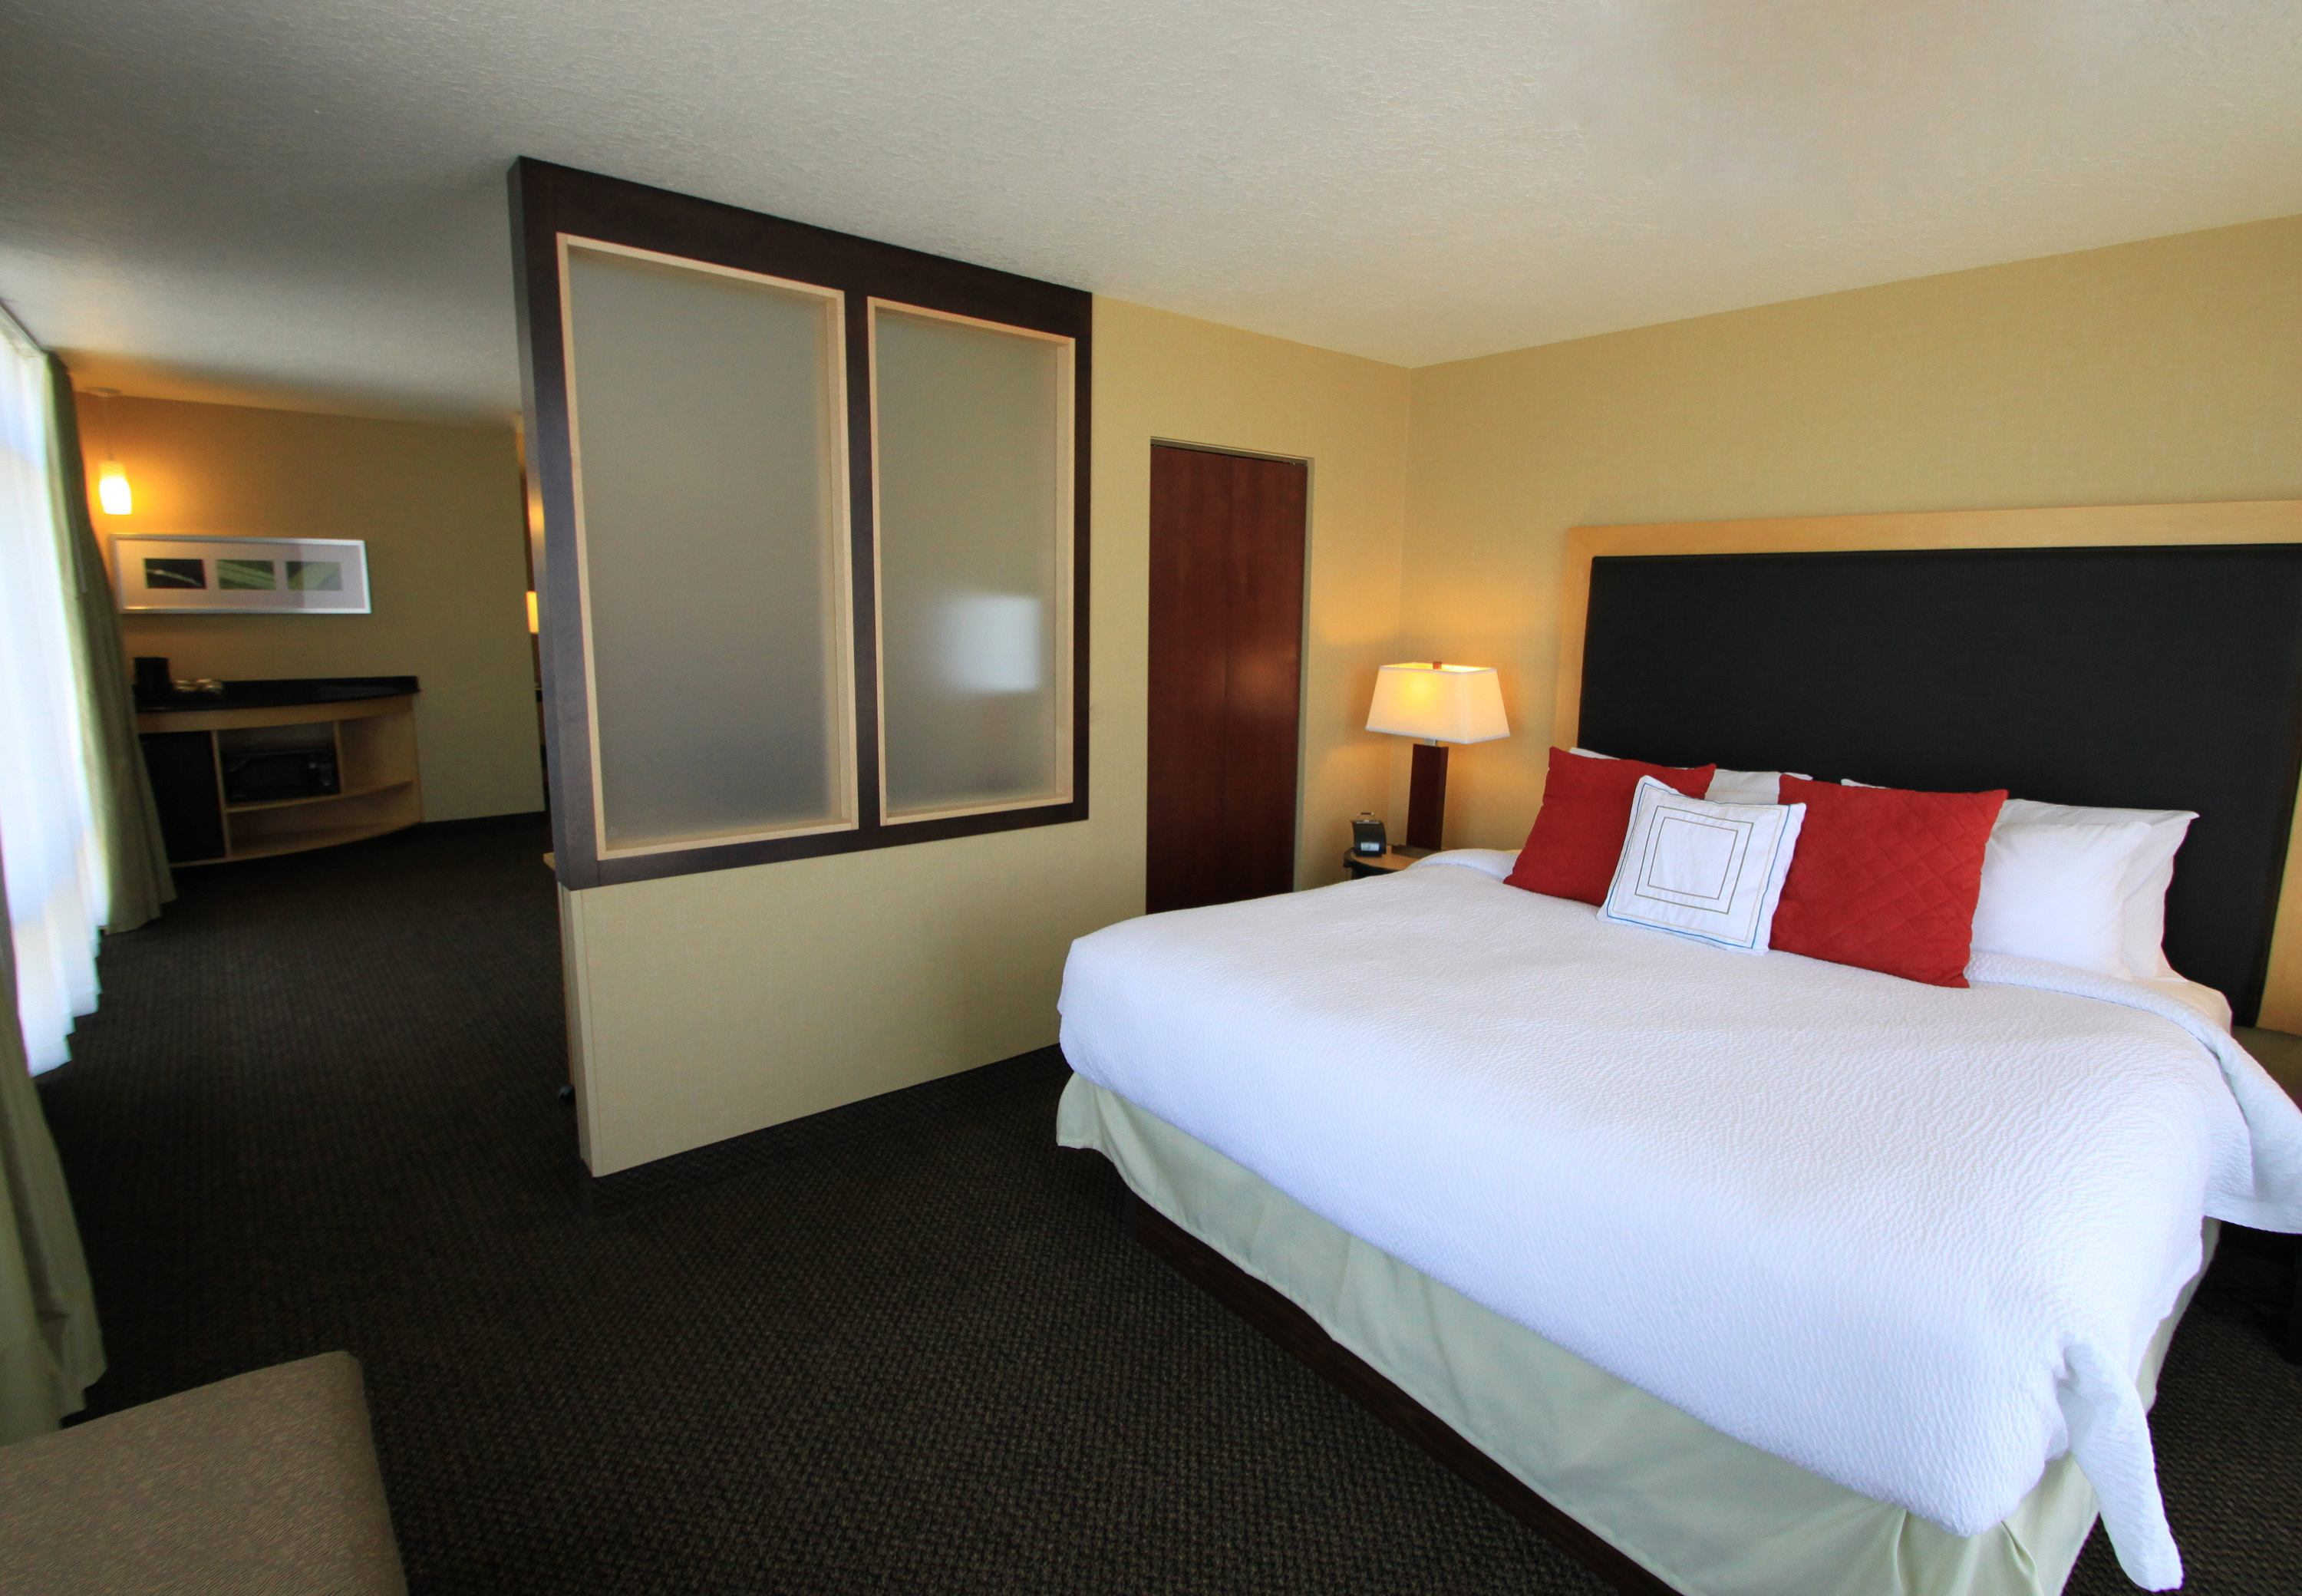 SpringHill Suites by Marriott Green Bay image 1